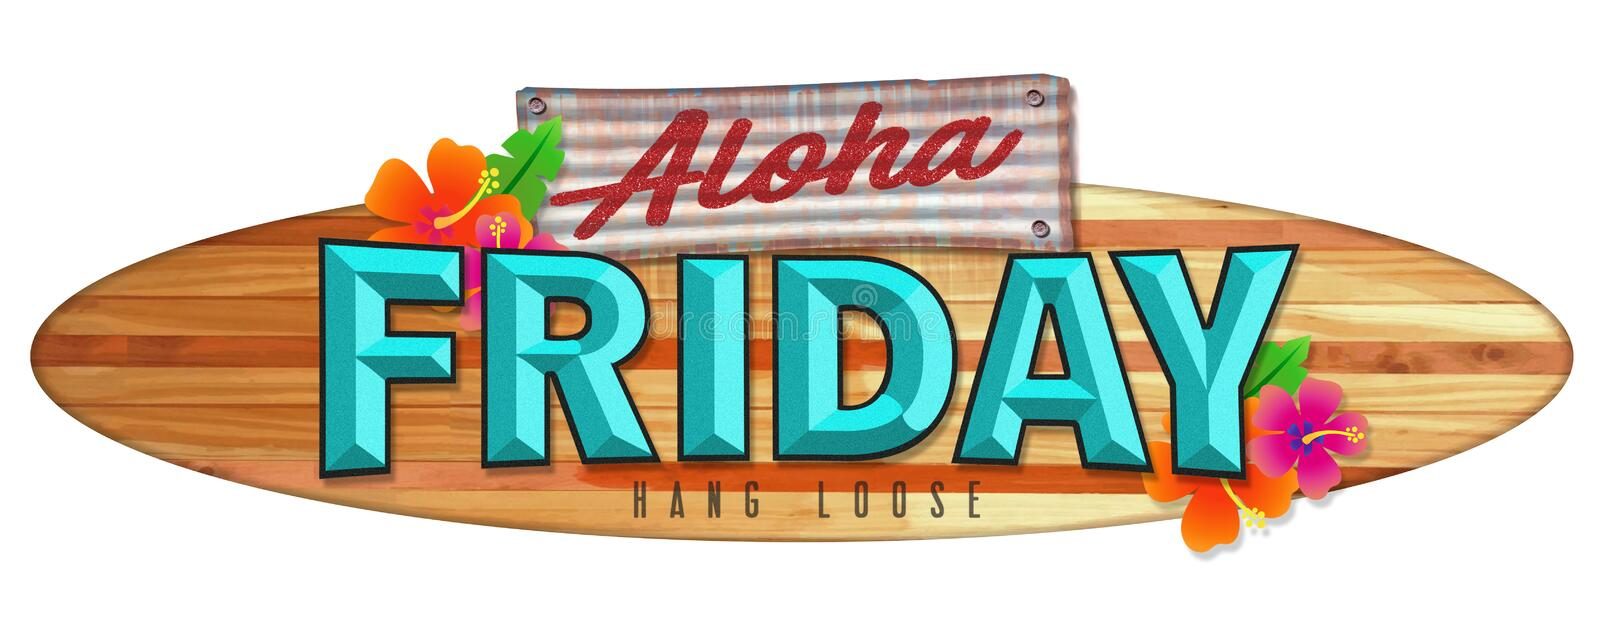 Aloha Friday Surfboard Sign stock illustratie